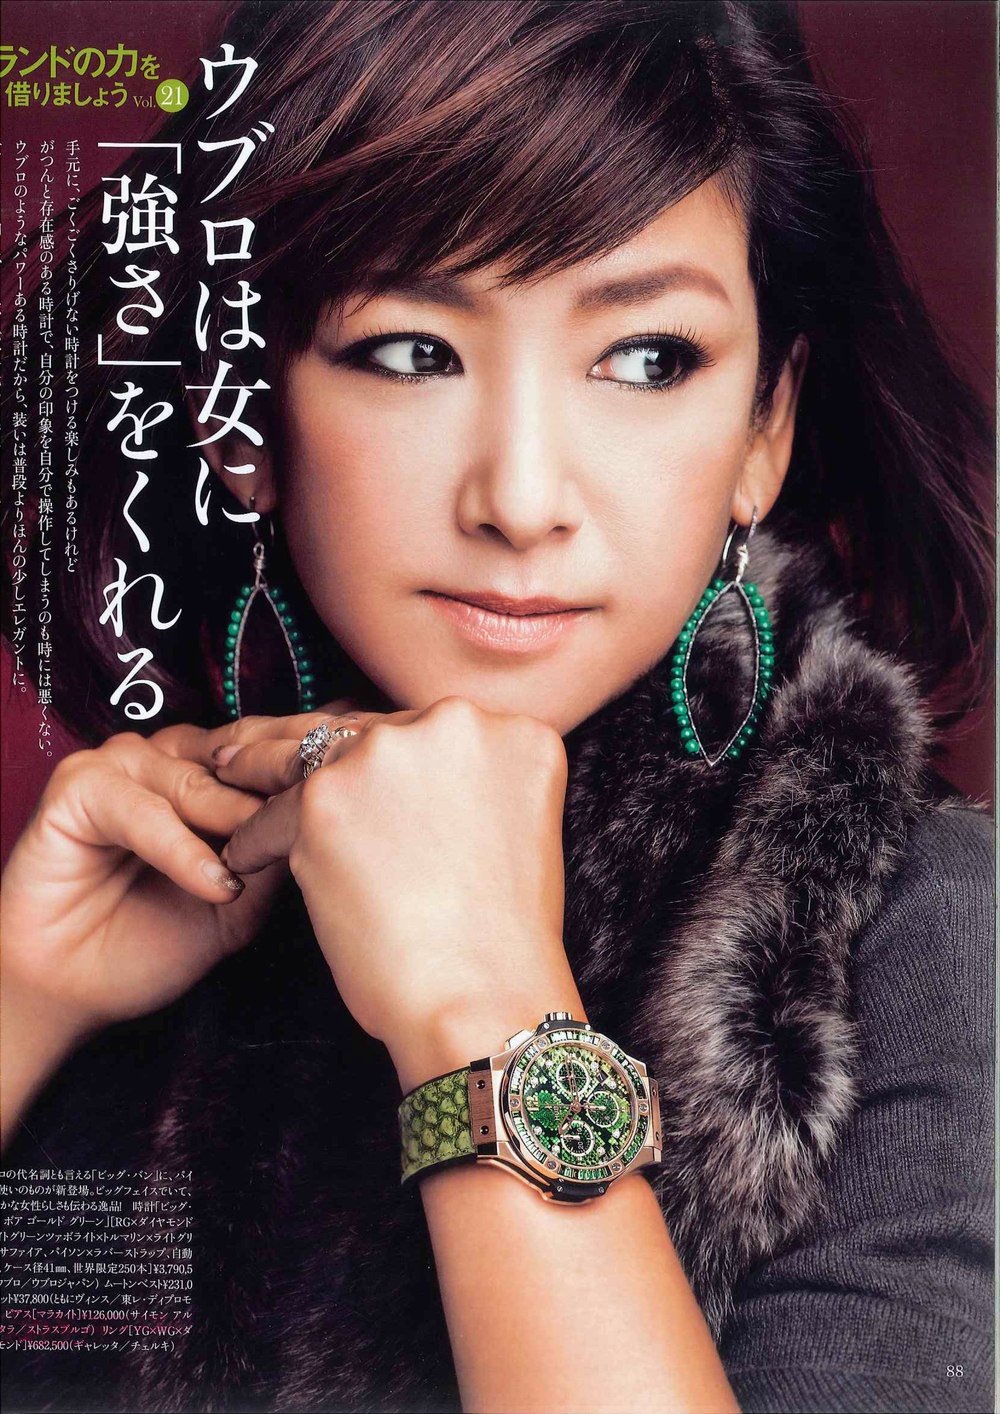 JAPAN- HERS MAGAZINE NOVEMBER 2012 ISSUE.  STERLING SILVER SMALL LEAF FRAME EARRINGS HAND WOVEN WITH MALACHITE AT Strasburgo